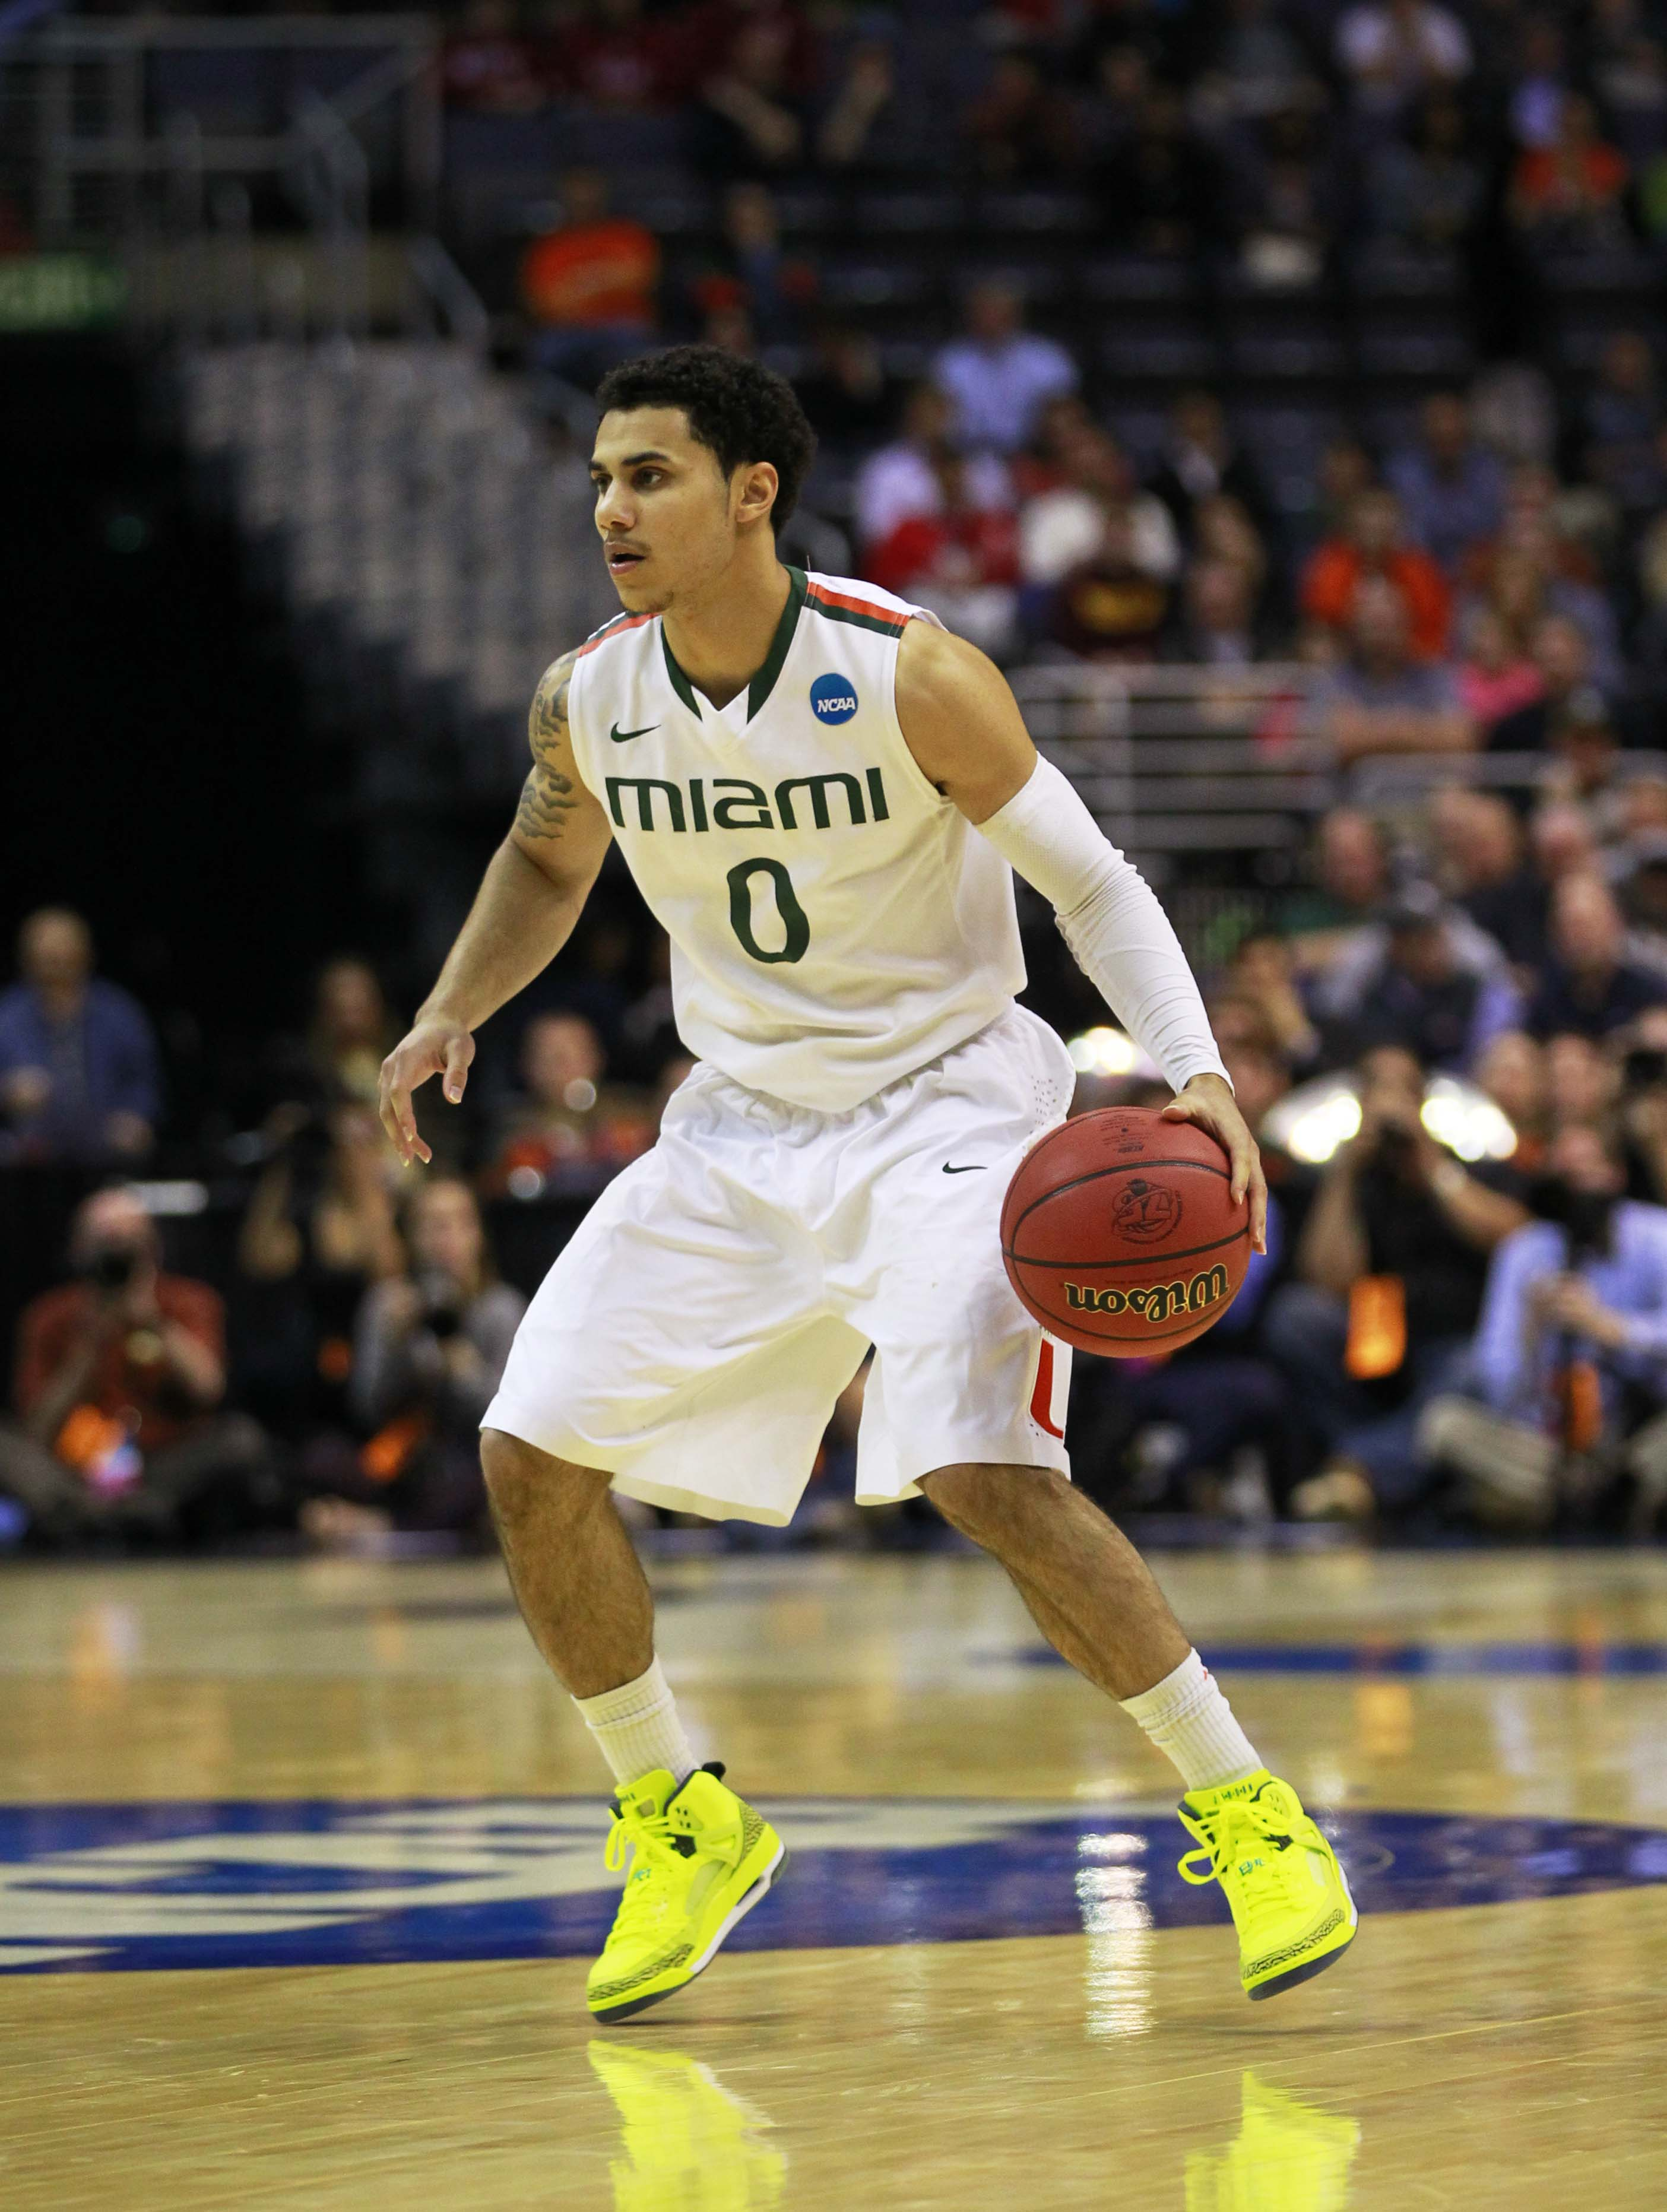 Shane Larkin averaged 14.5 points and 4.6 assists last season. (USA Today Sports)